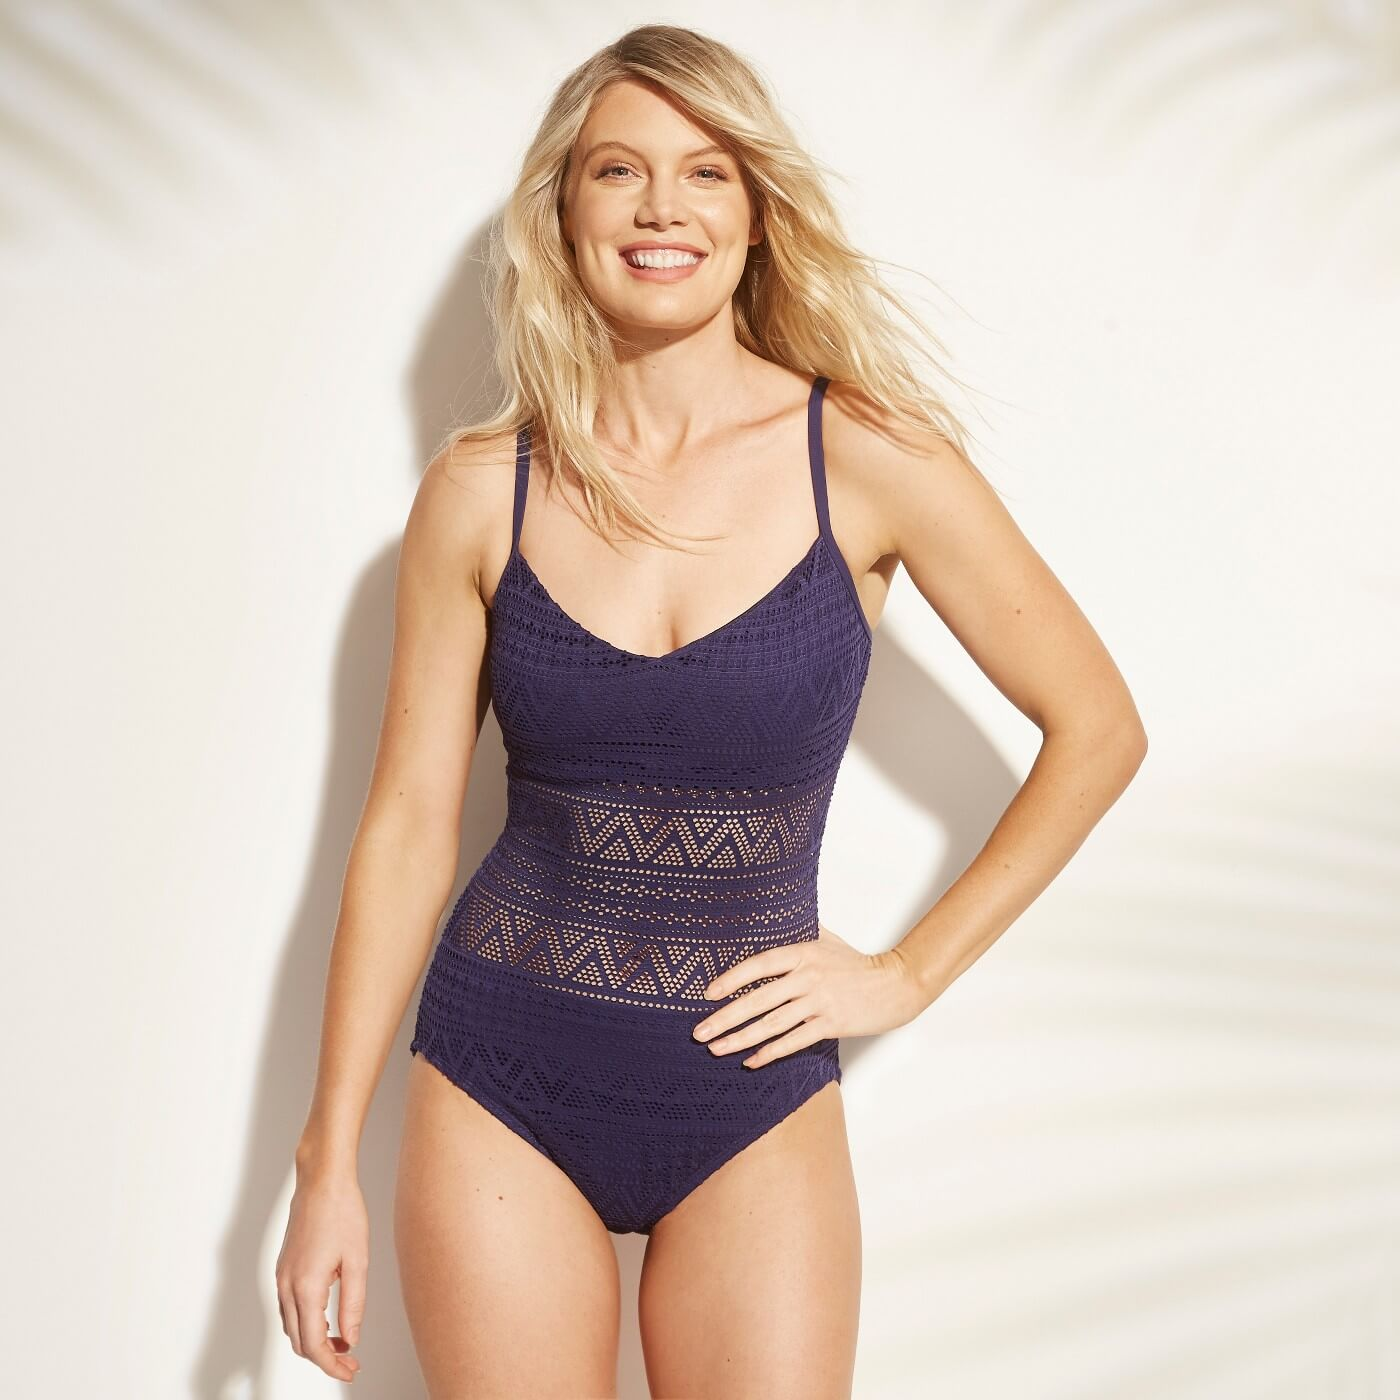 bddcad907 15 Target Swimsuits That Are Prime For Some Fun In The Sun | I AM & CO®